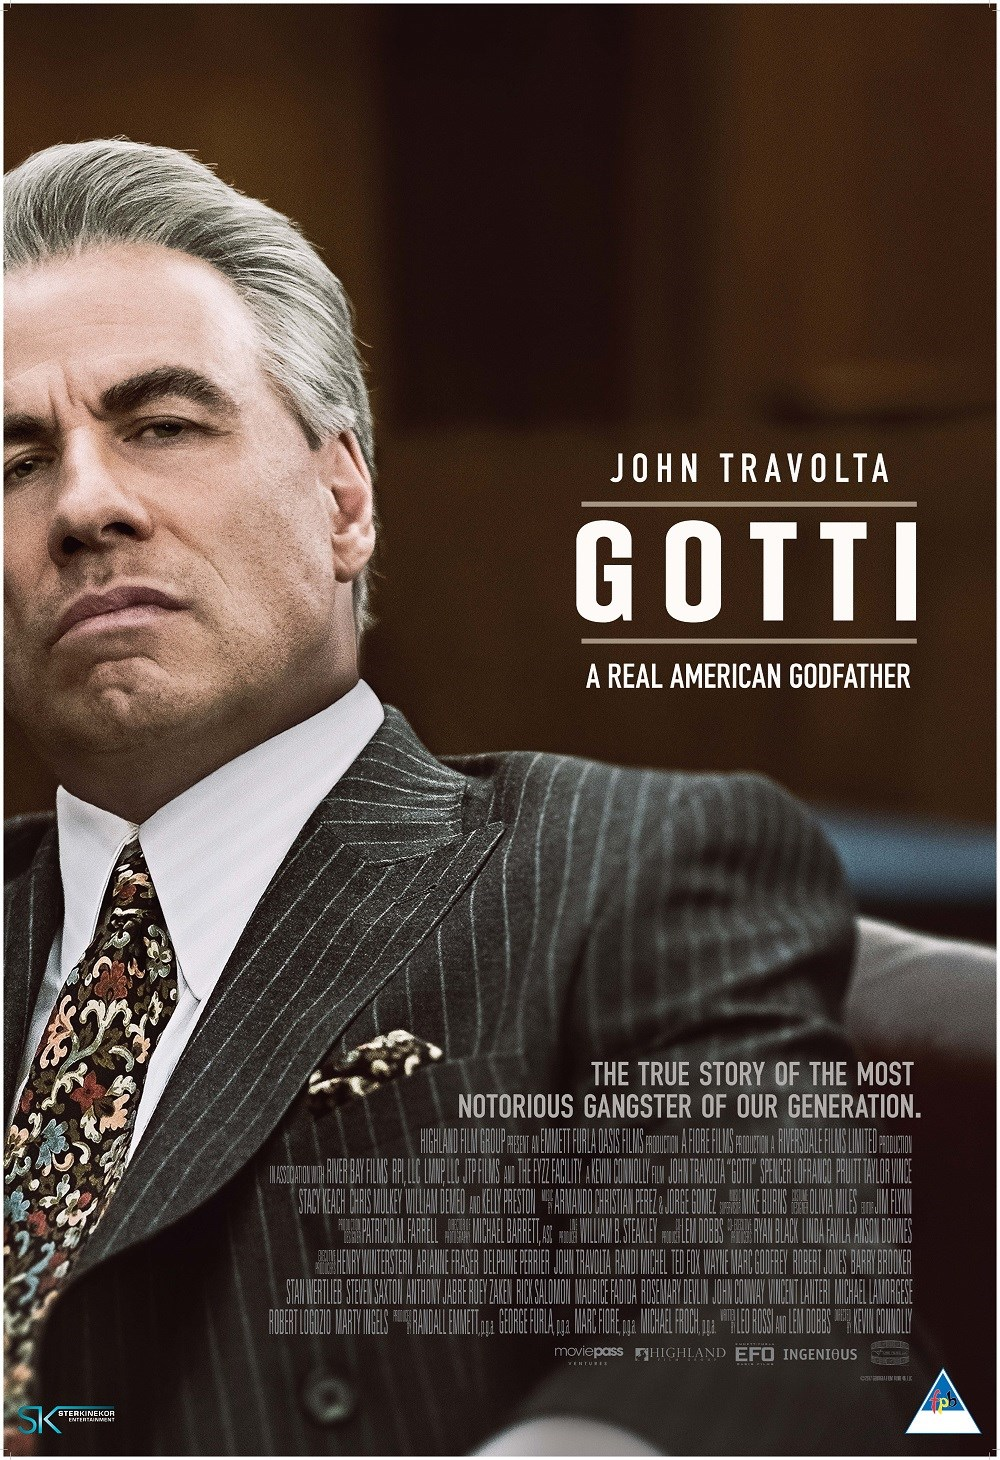 GOTTI now showing at Cavendish Square